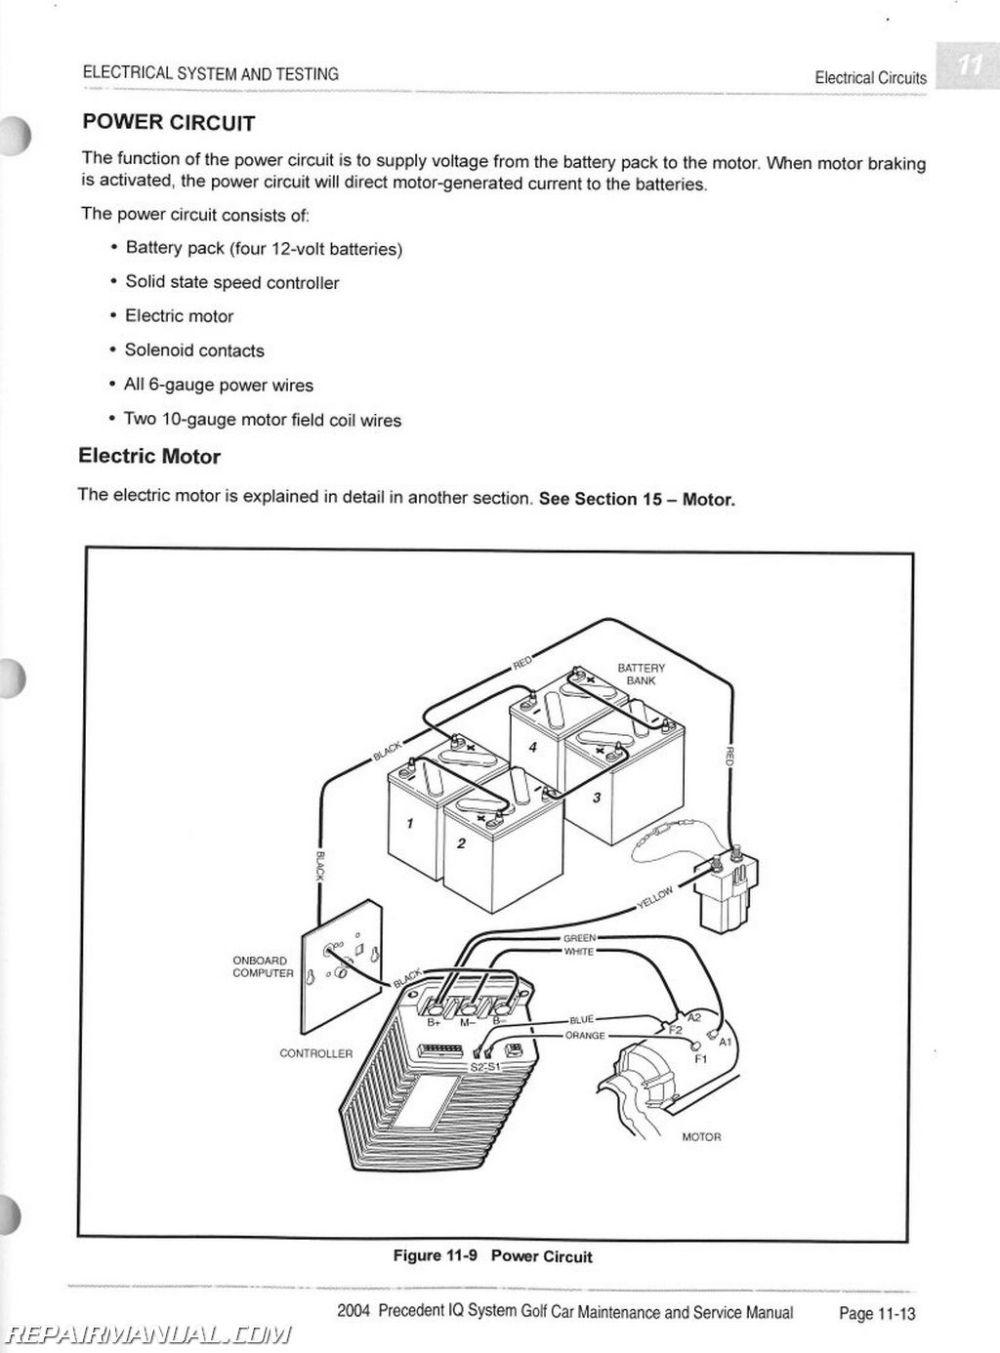 medium resolution of club car precedent wiring diagram pdf wiring diagrams govener club car manuals and diagrams club car manuals and diagrams